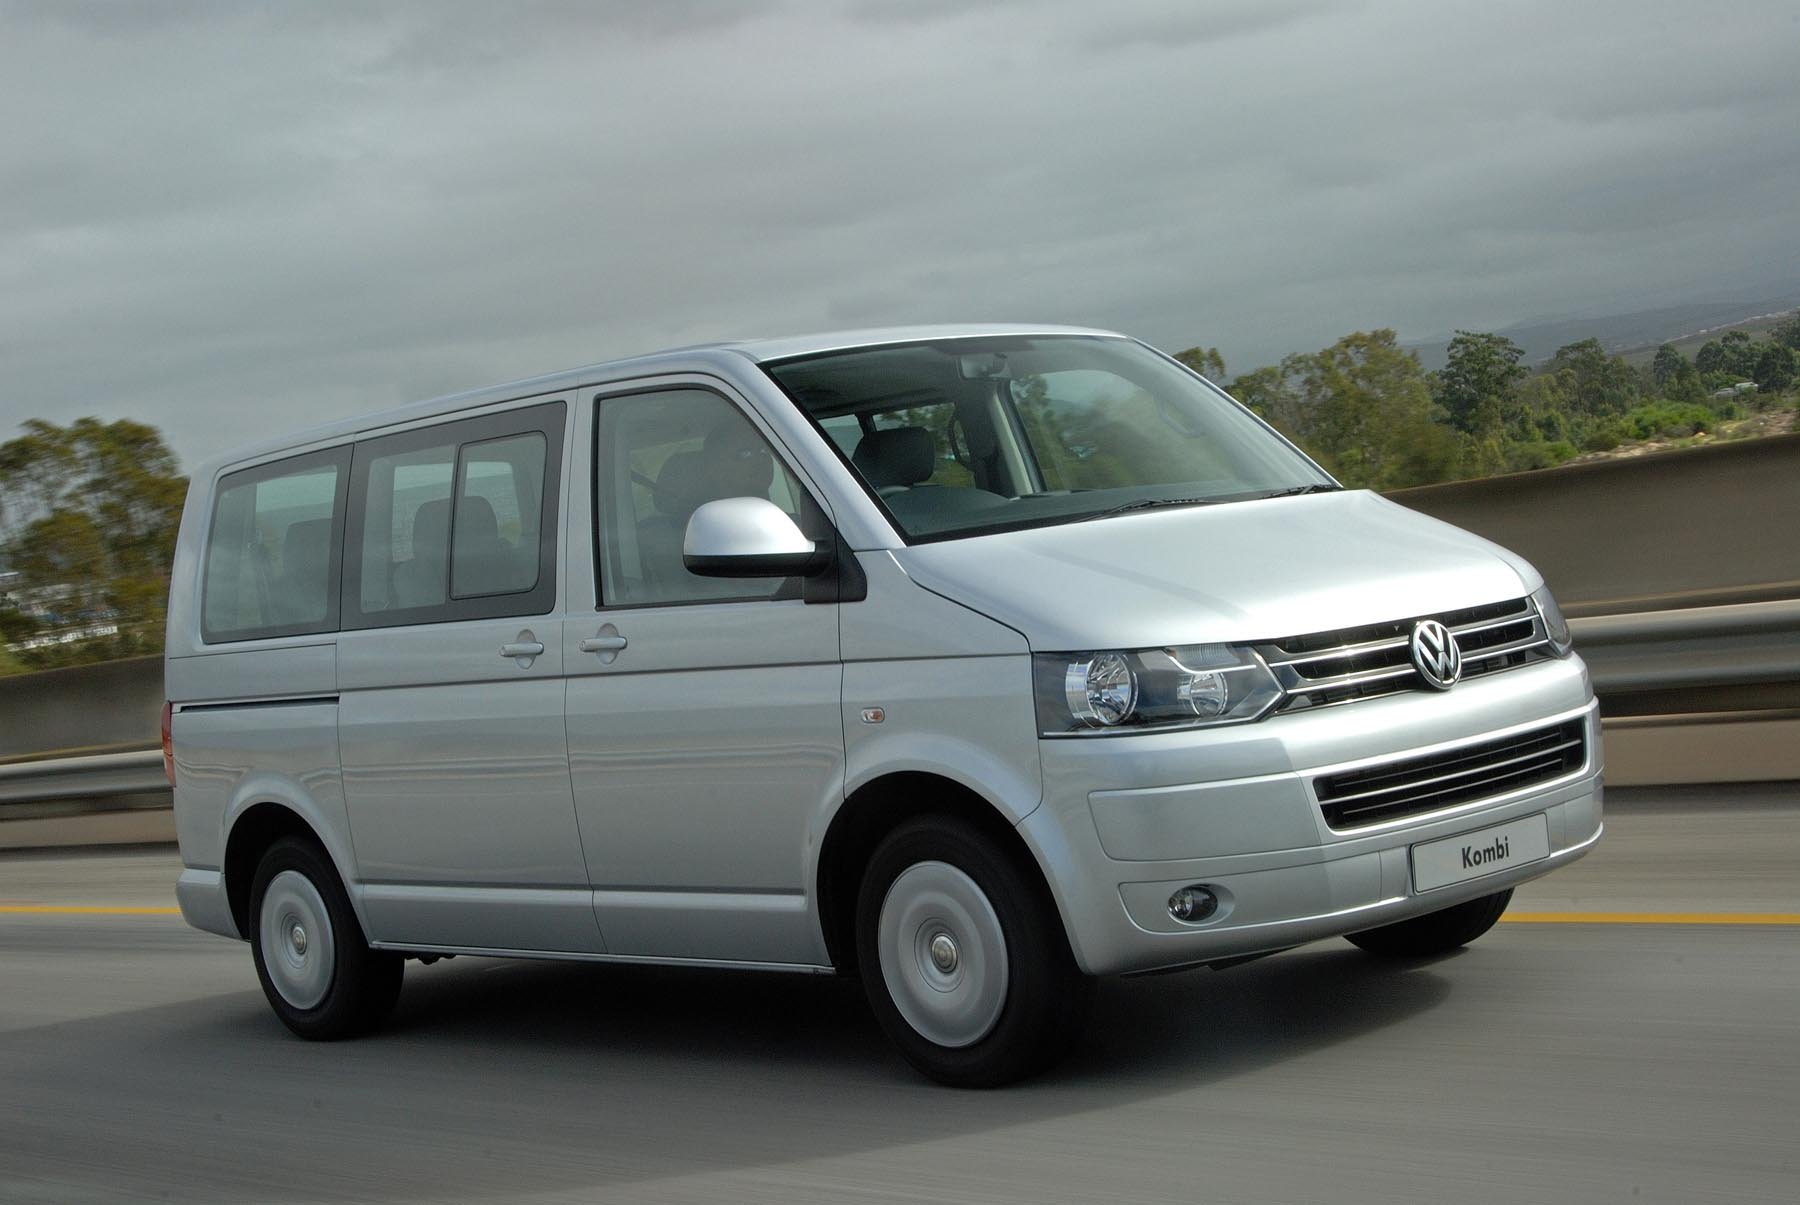 2004 volkswagen caravelle ii t5 pictures information and specs auto. Black Bedroom Furniture Sets. Home Design Ideas